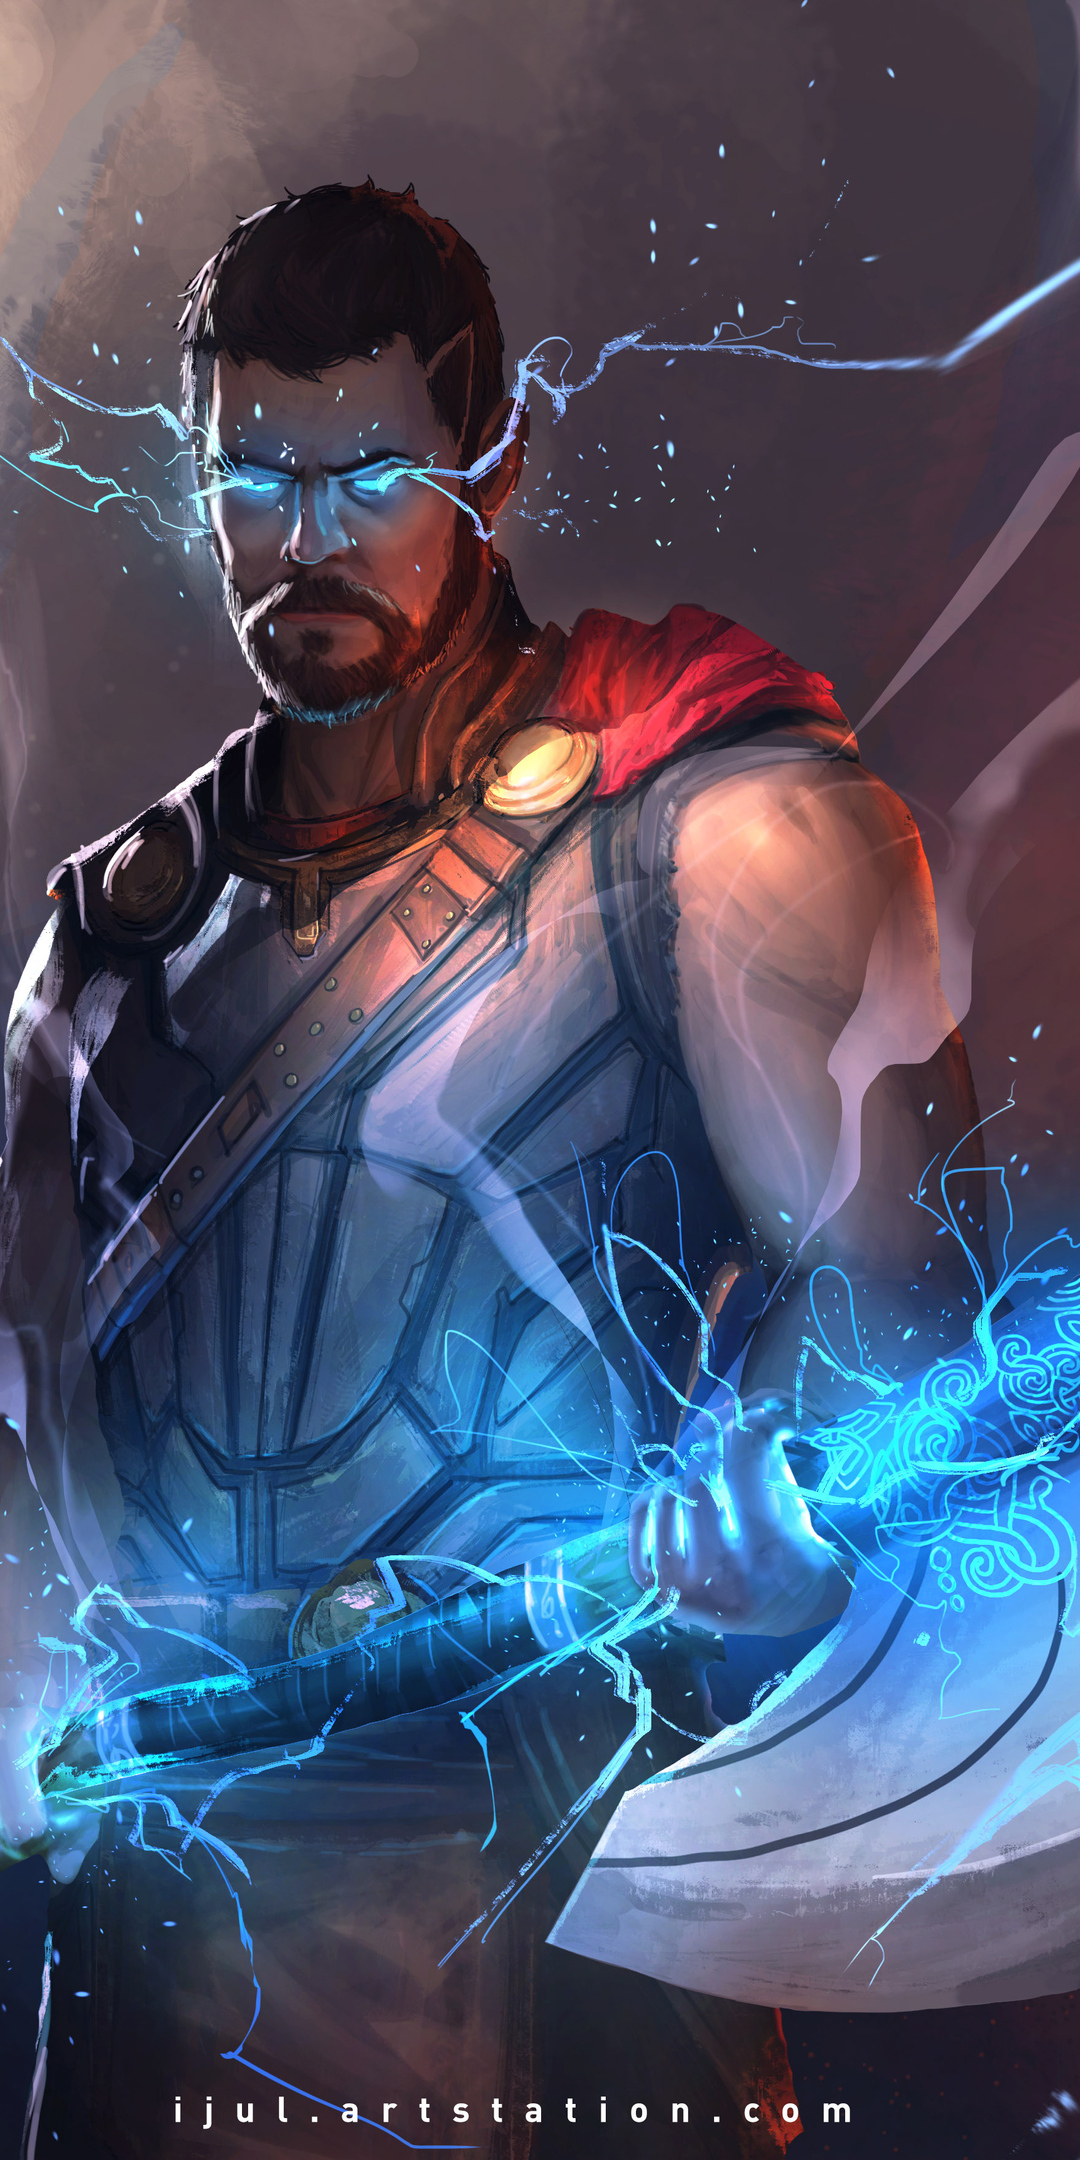 1080x2160 Thor Avengers 4 Artwork One Plus 5t Honor 7x Honor View 10